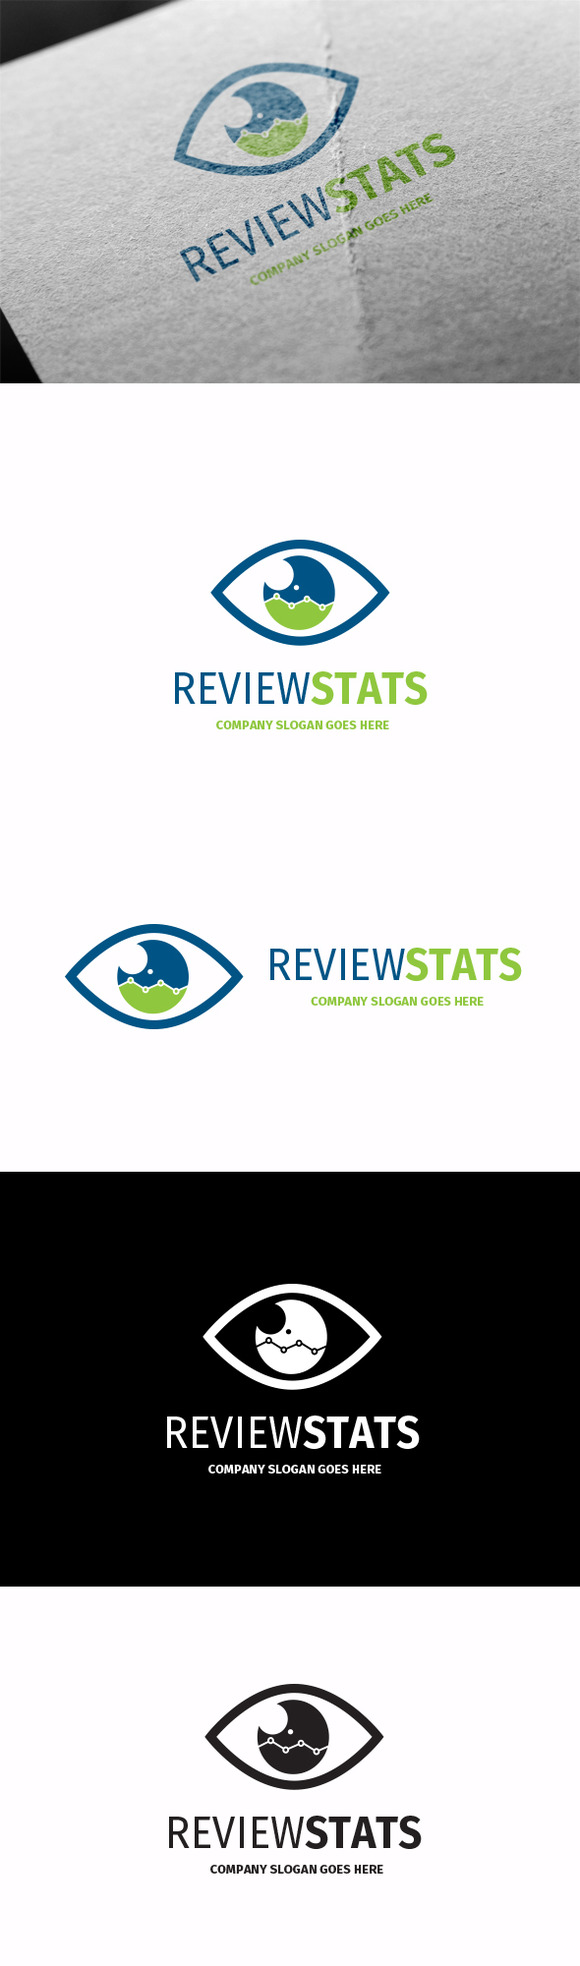 Reviewstats Logo